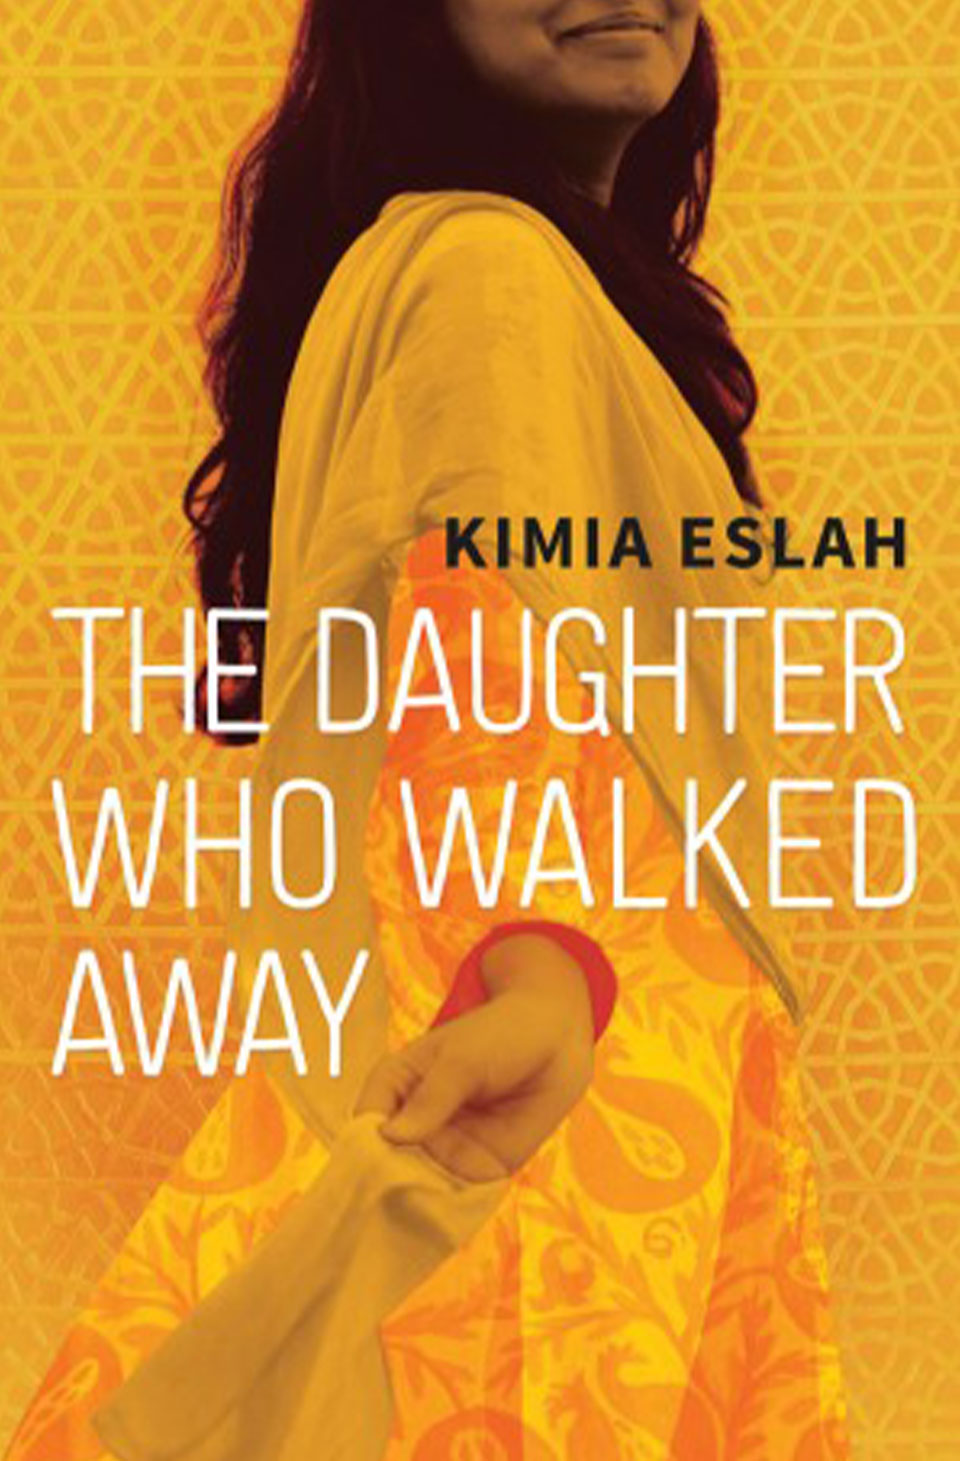 The Daughter Who Walked Away by Kimia Eslah